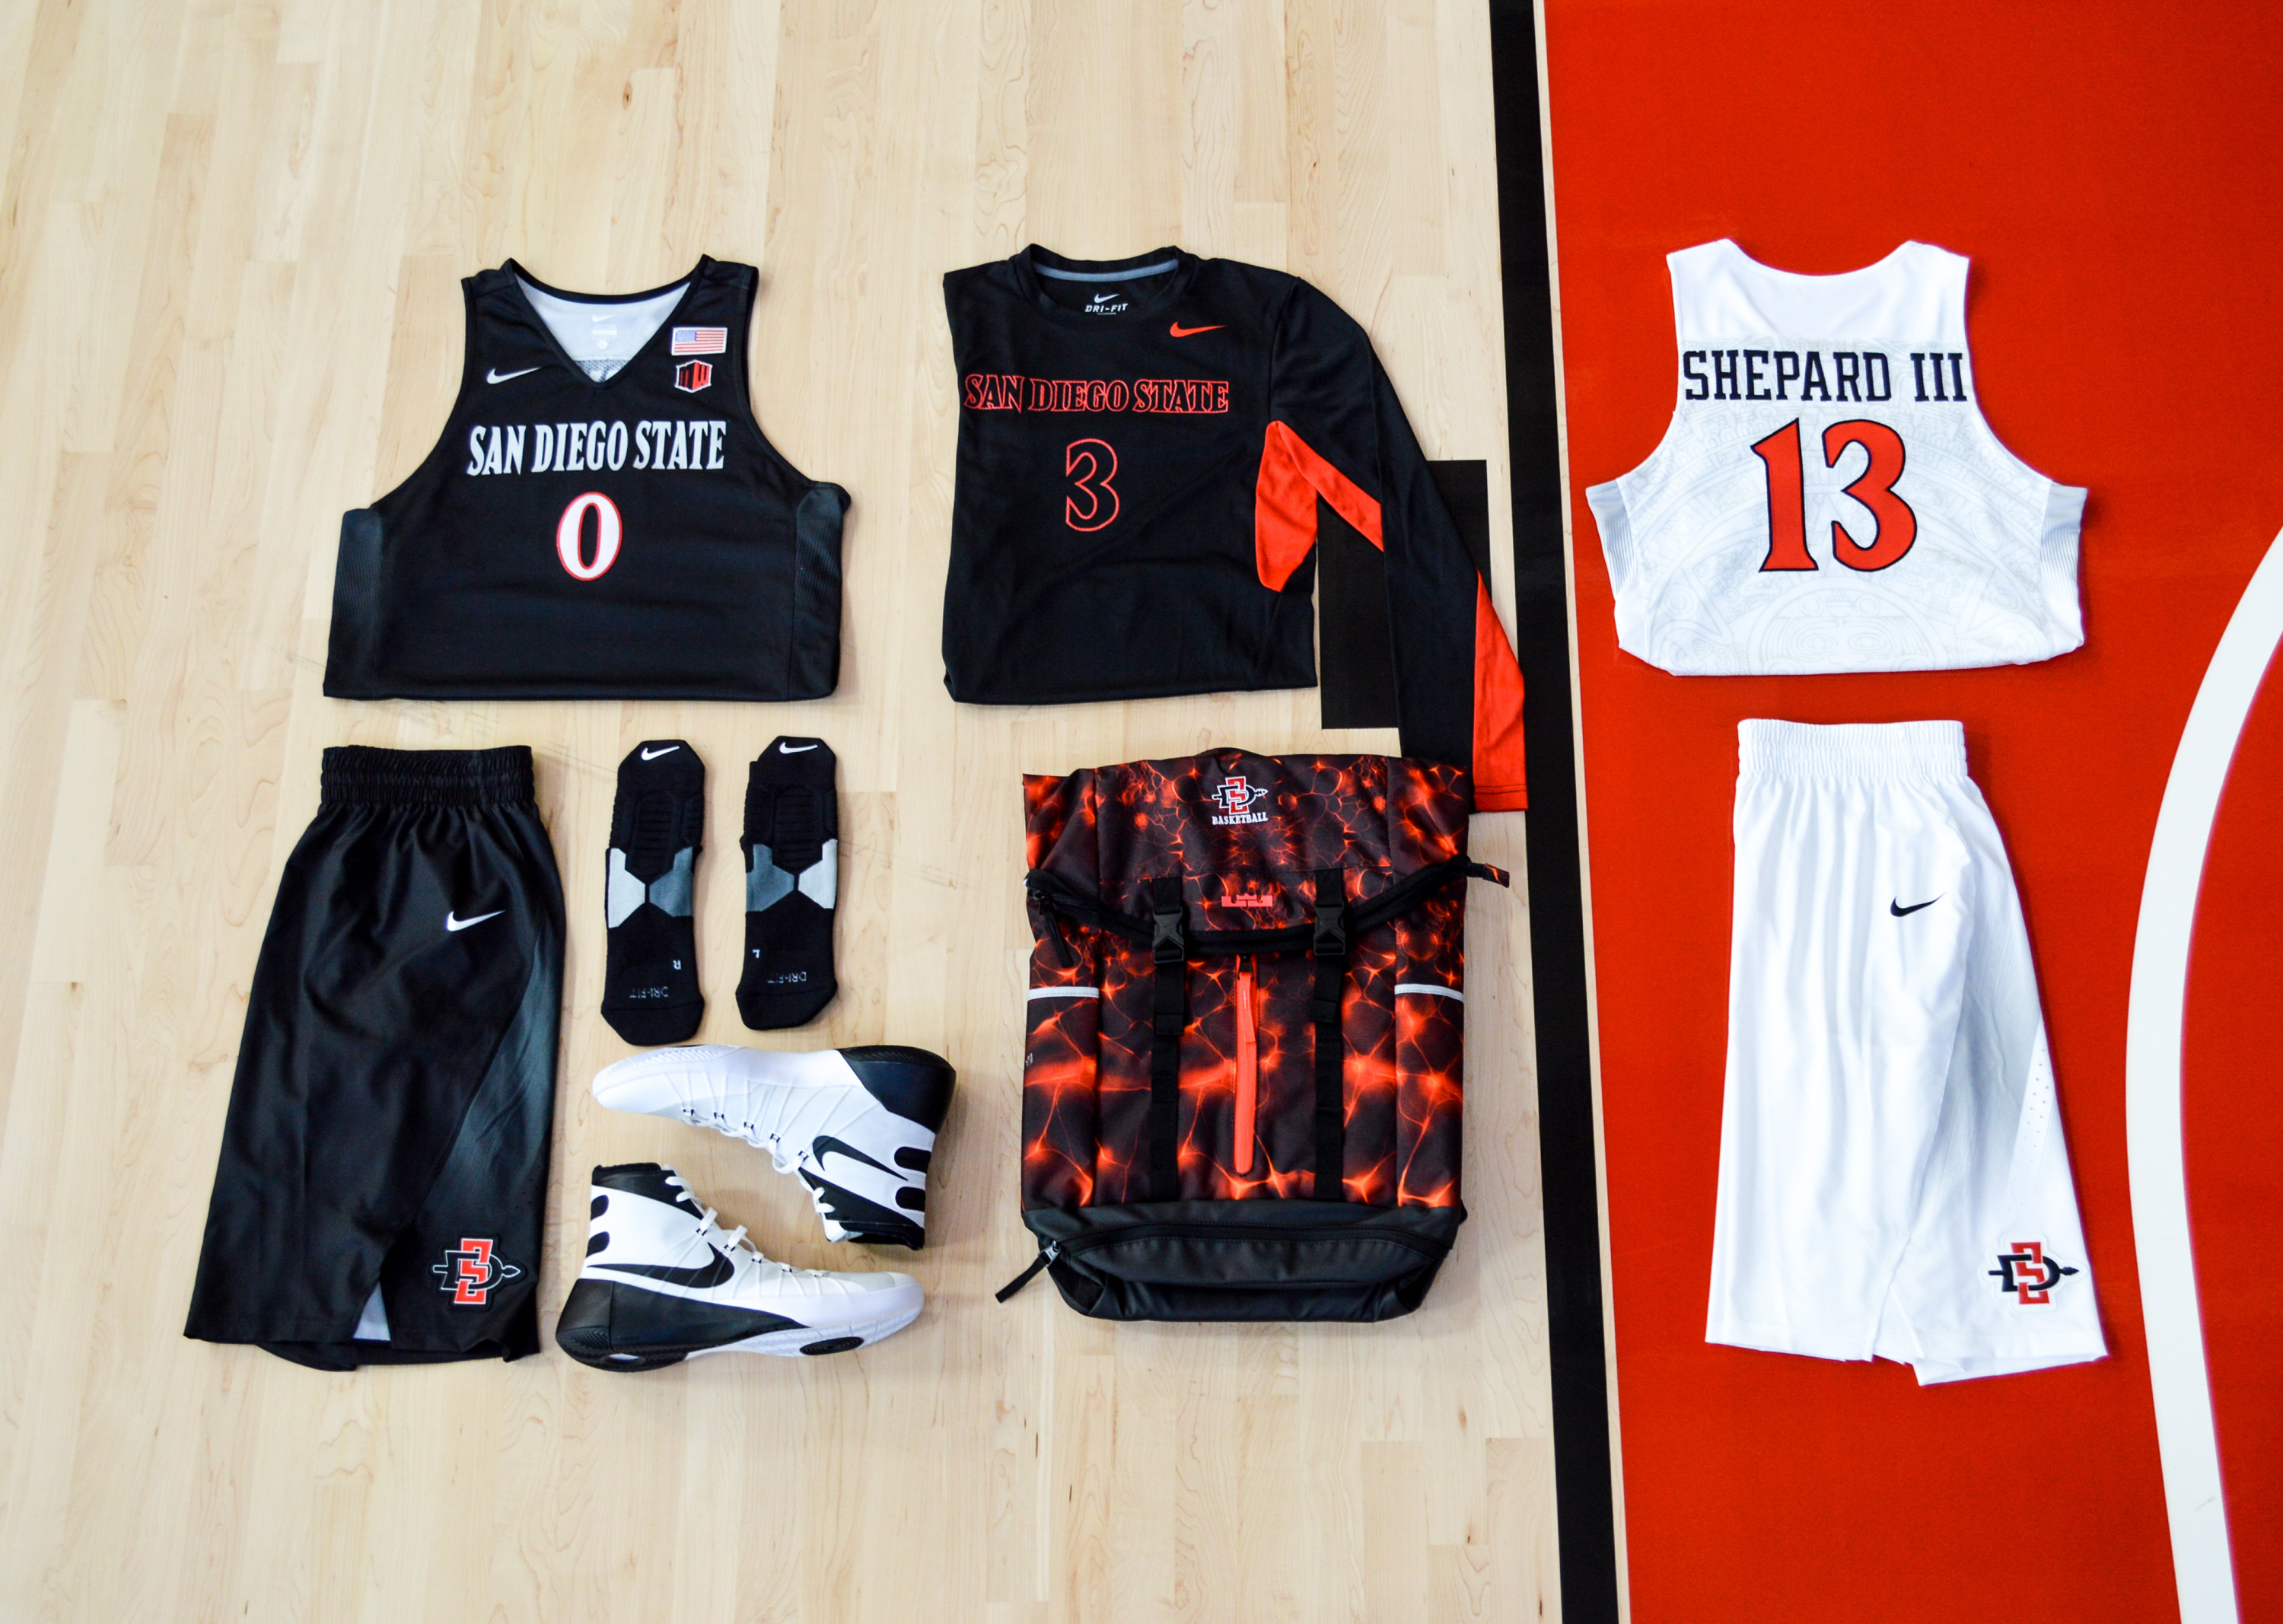 cheaper 7517d 47335 San Diego State basketball gets new uniforms - Mountain West ...